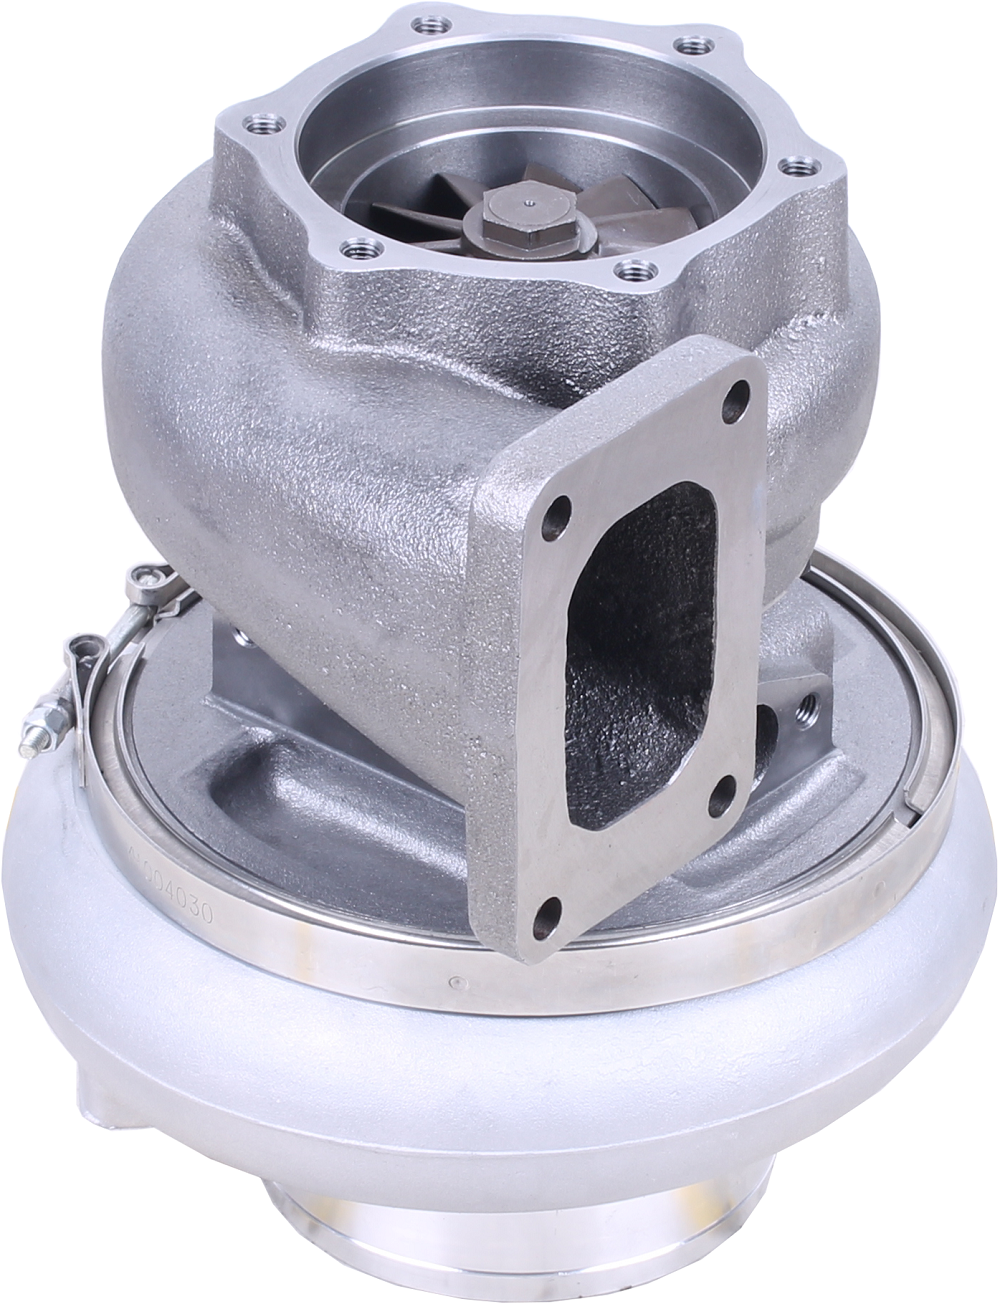 For abb /ct26 / isuzu / kits diesel engine electric Turbocharger balancing machine parts core for sales price